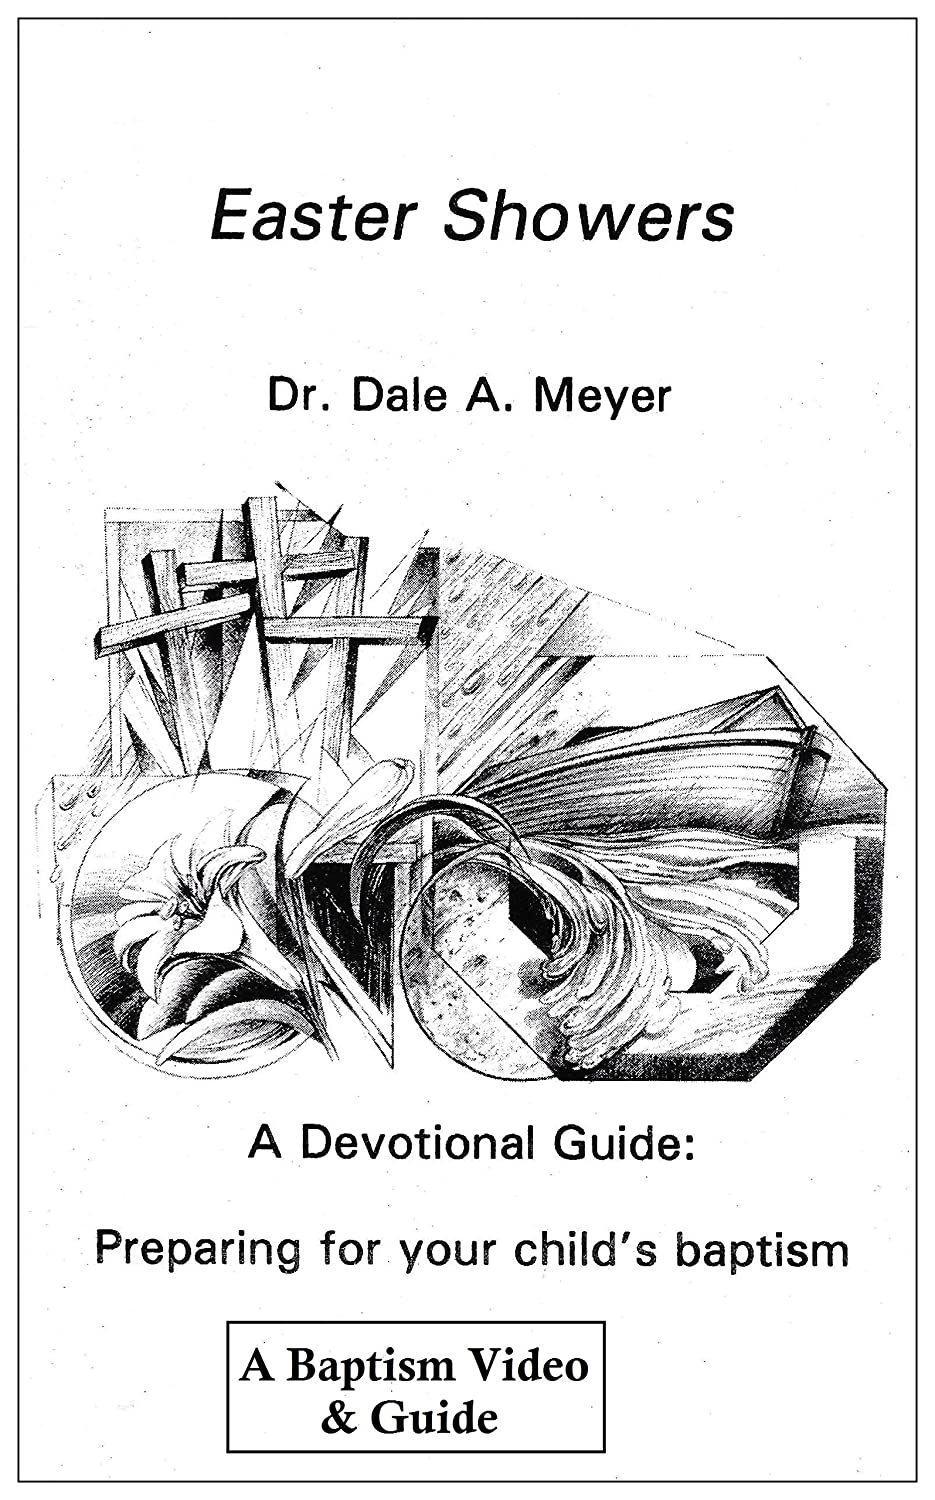 Easter Showers >> Amazon Com Easter Showers A Devotional Guide And Video Preparing